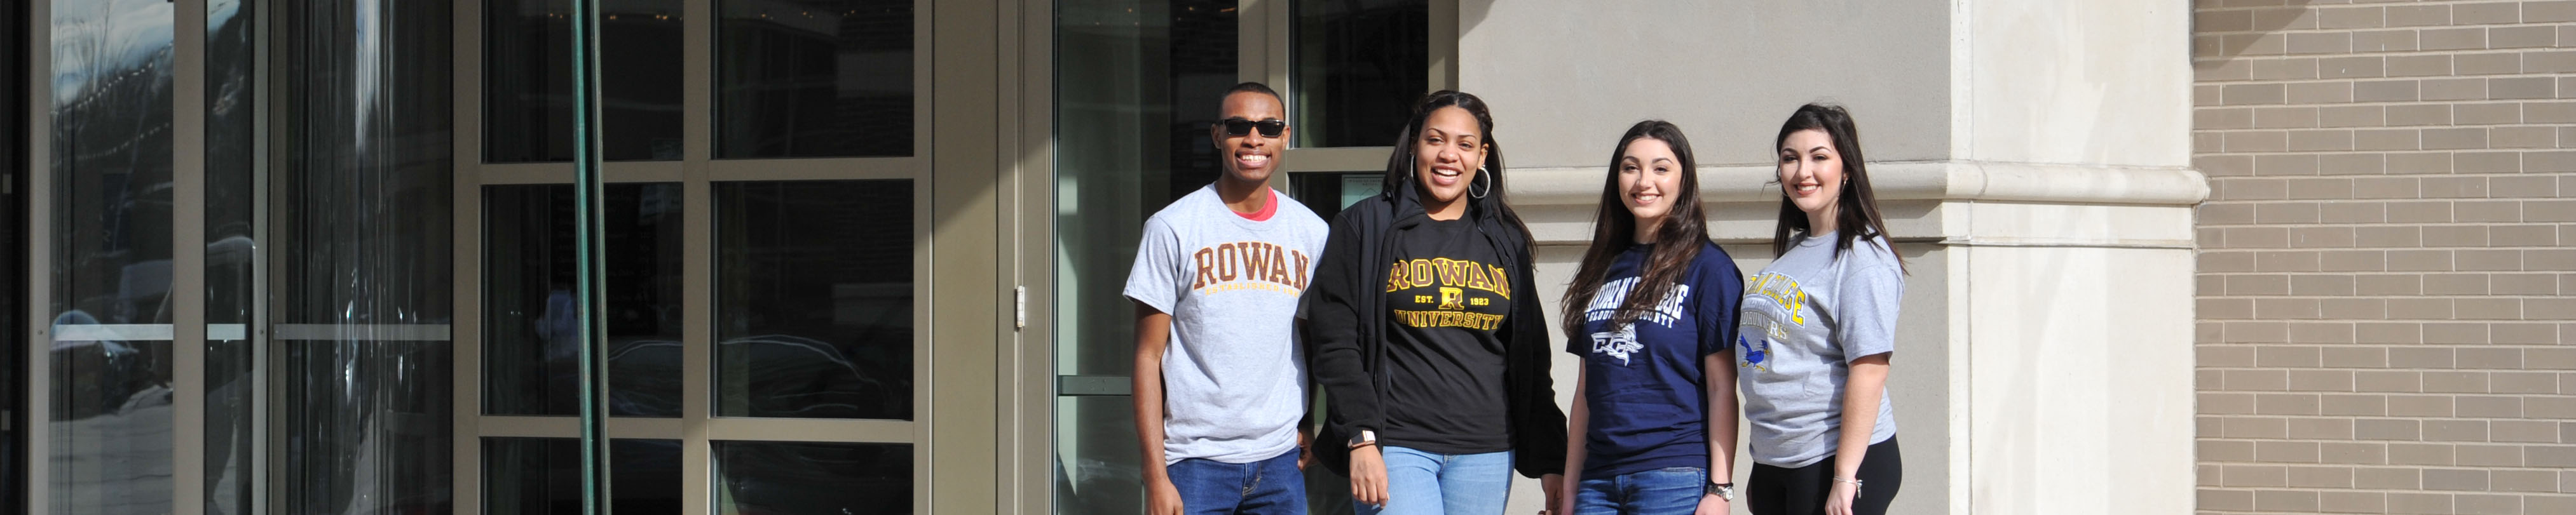 Students with RCSJ t-shirts along with Students with Rowan University standing outside